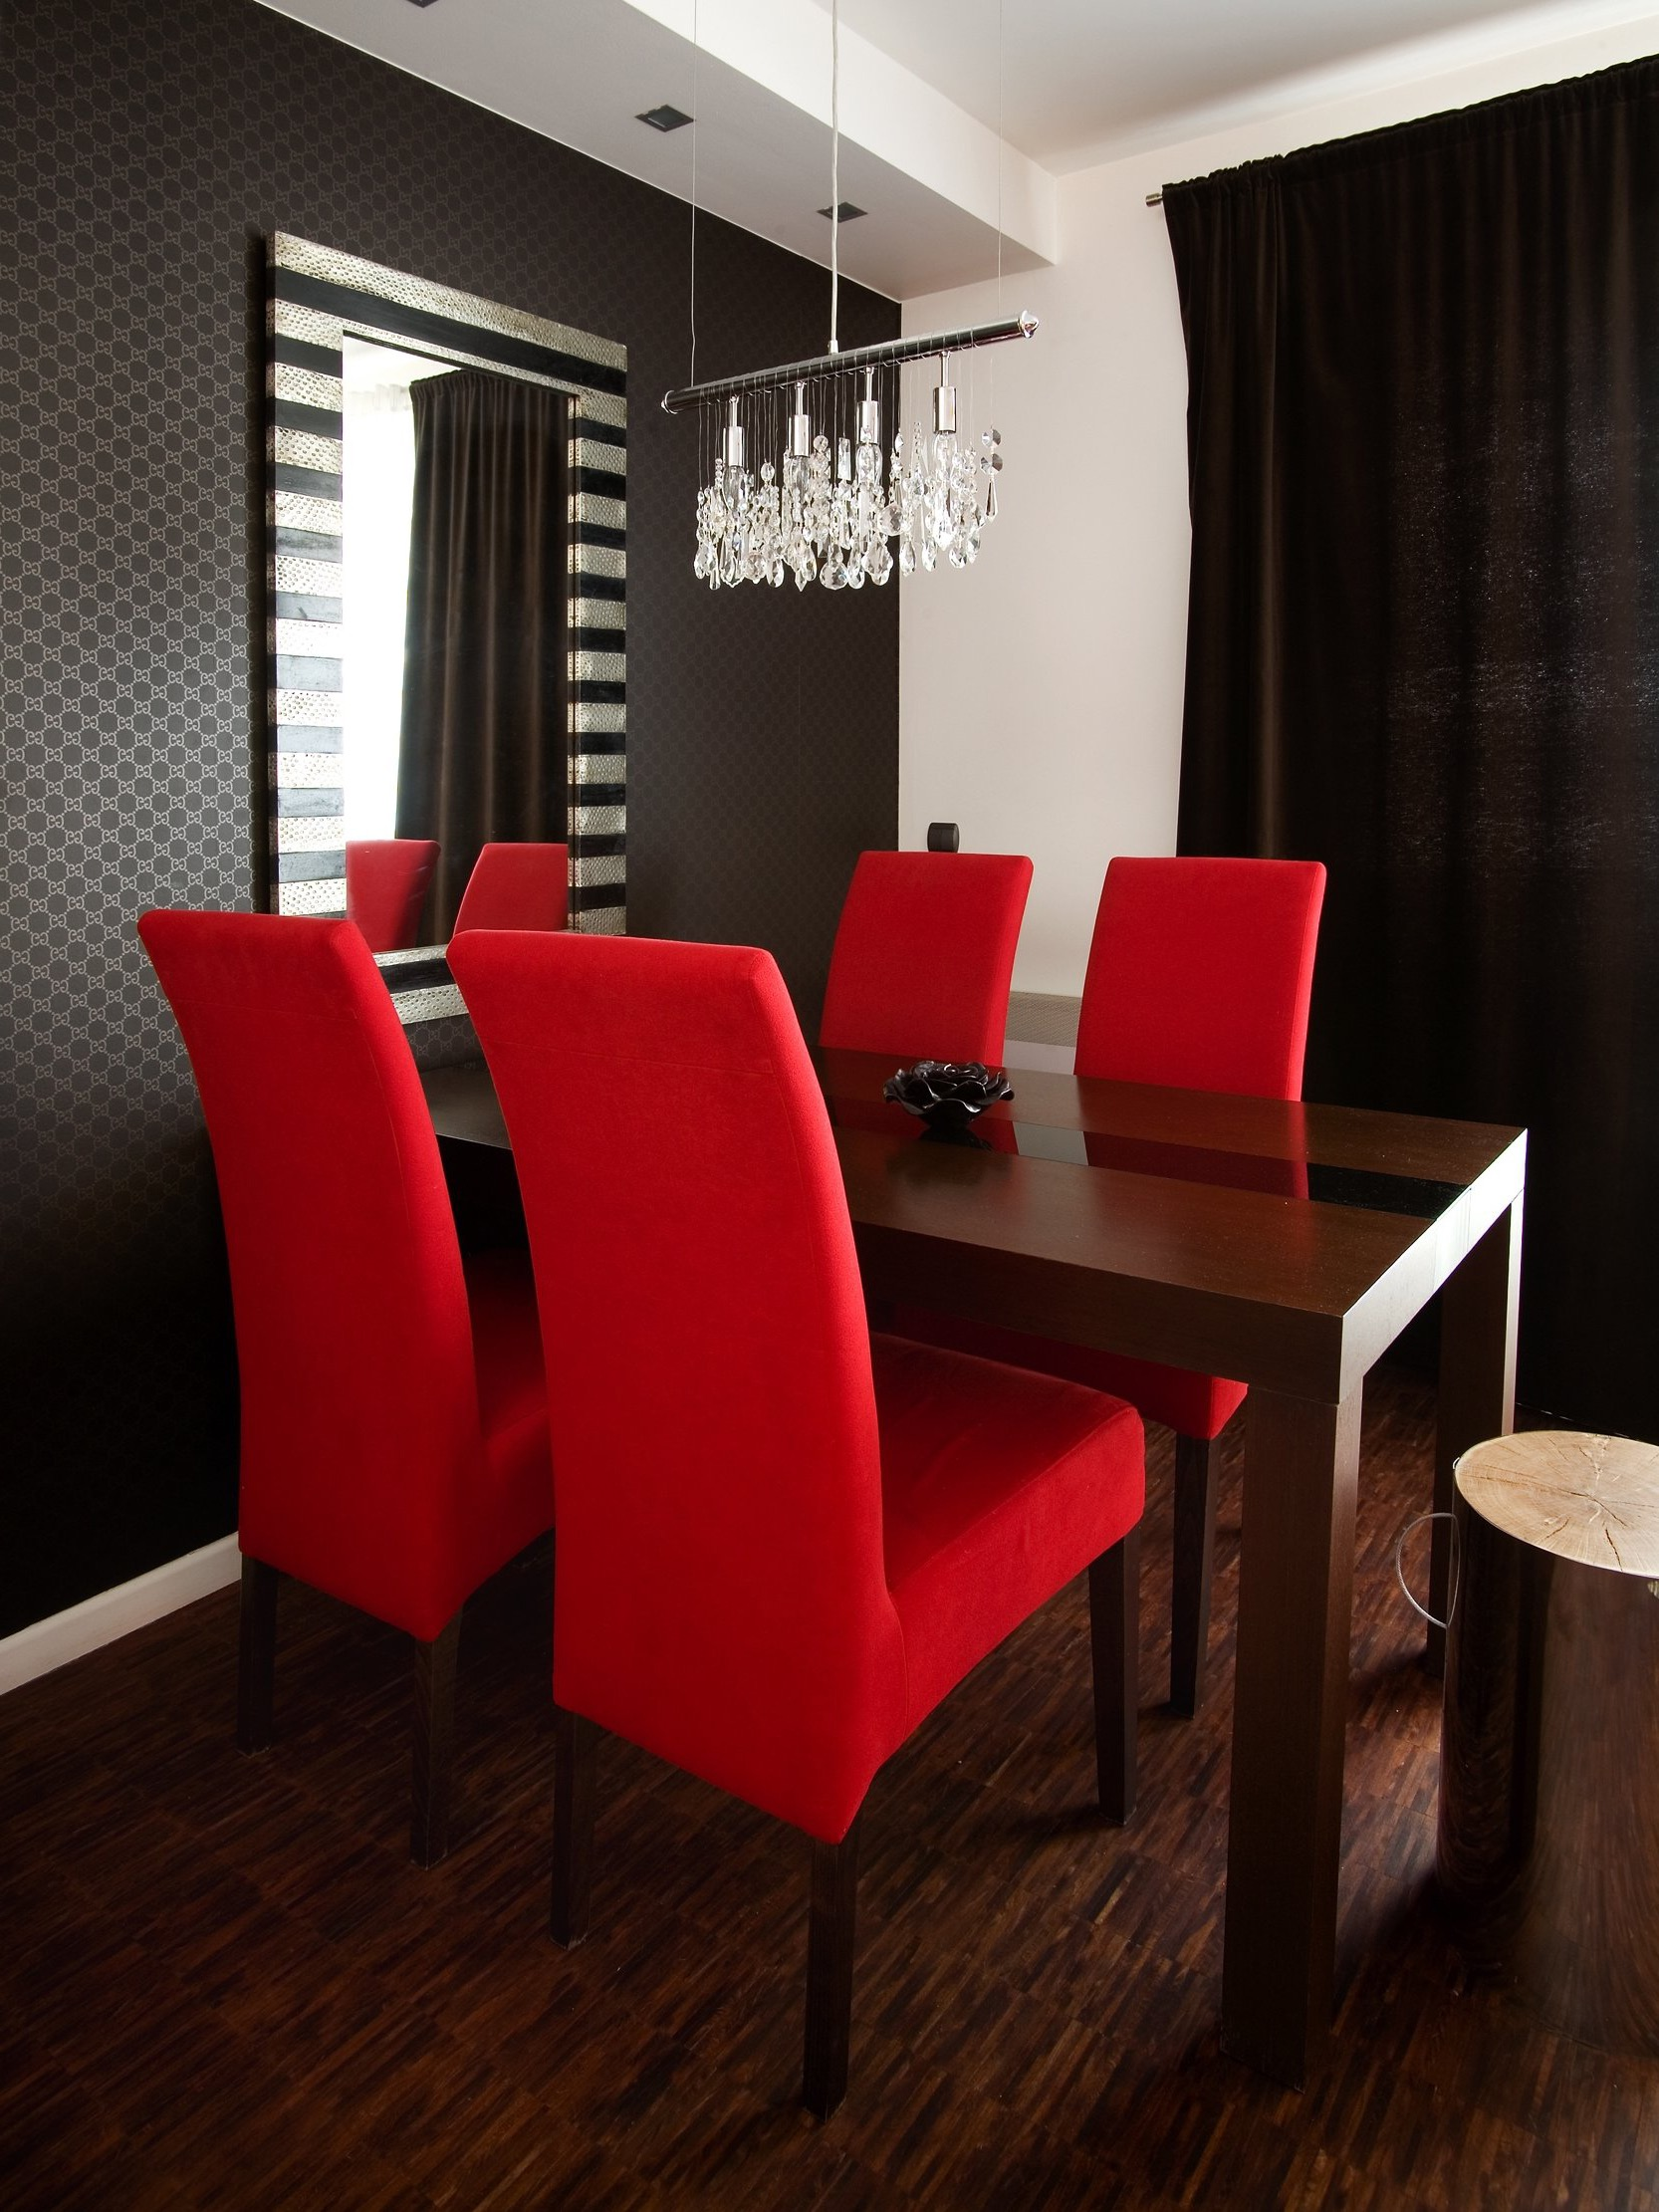 Contemporary Dining Room With Cushioned Red Chairs (Image 3 of 11)